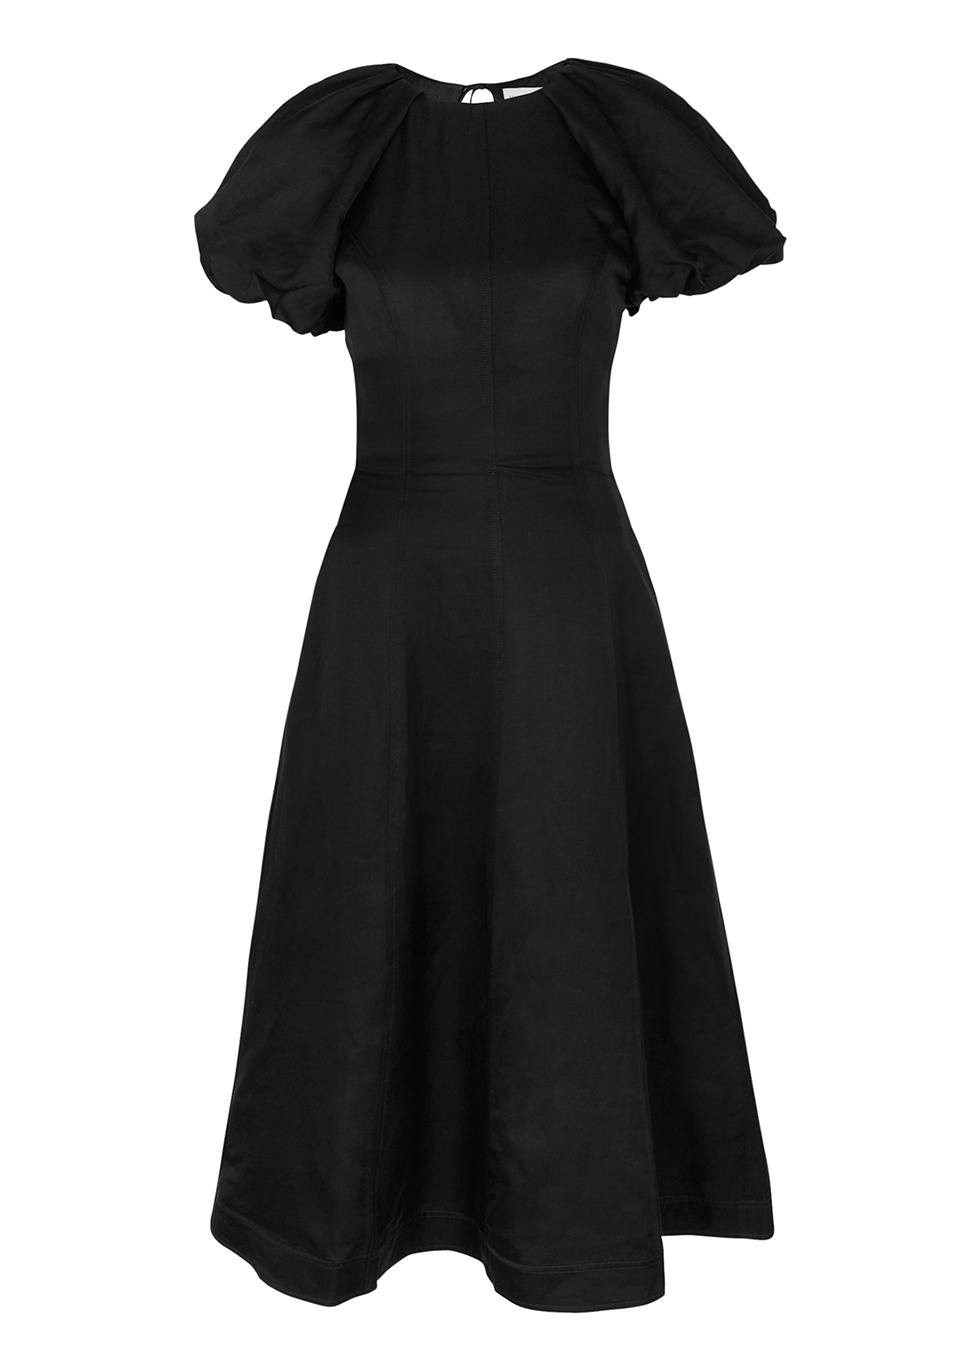 Aimee black puff-sleeve dress